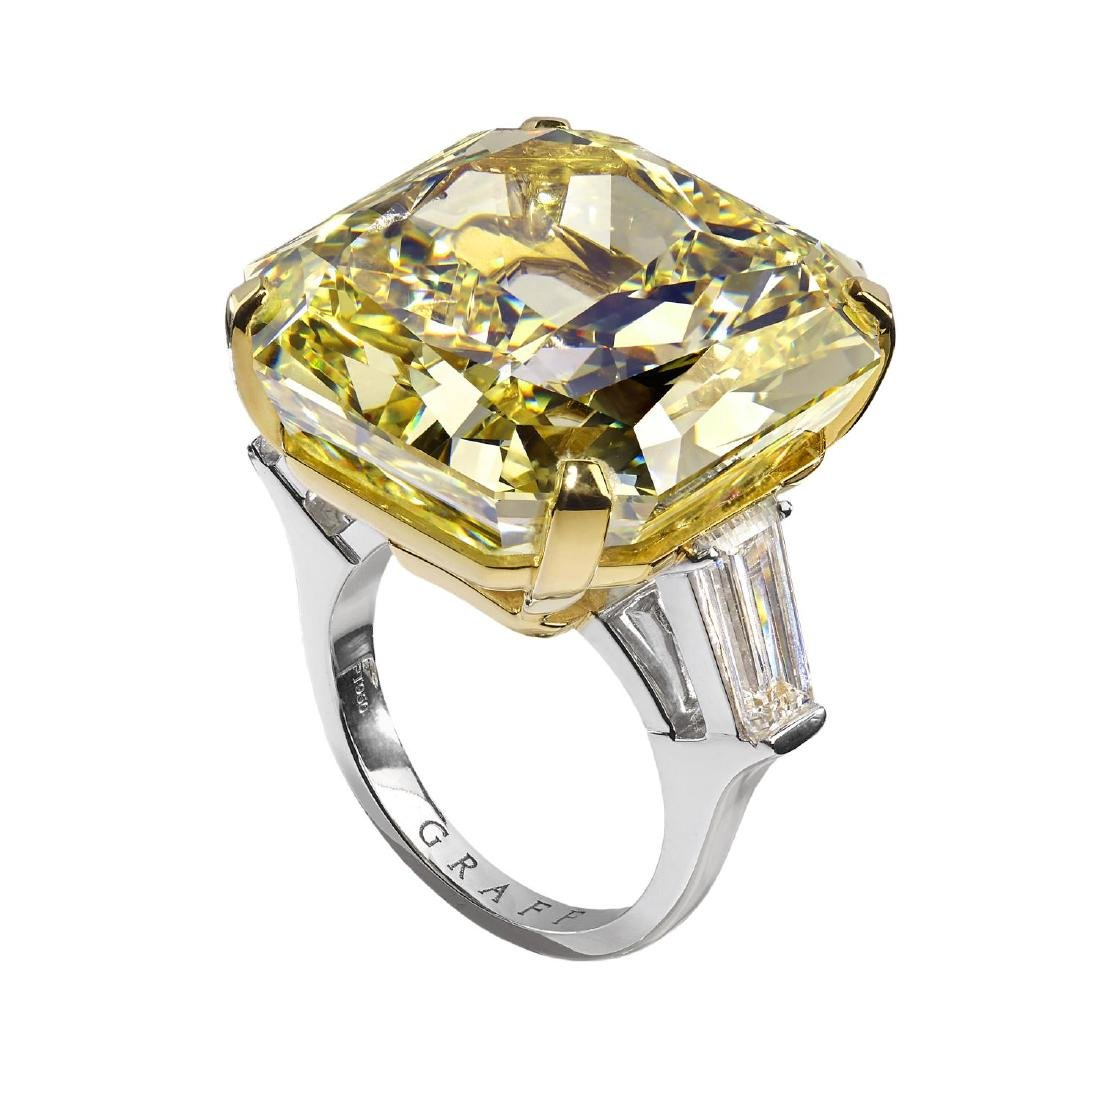 GRAFF - a Fancy Intense Yellow diamond ring. The